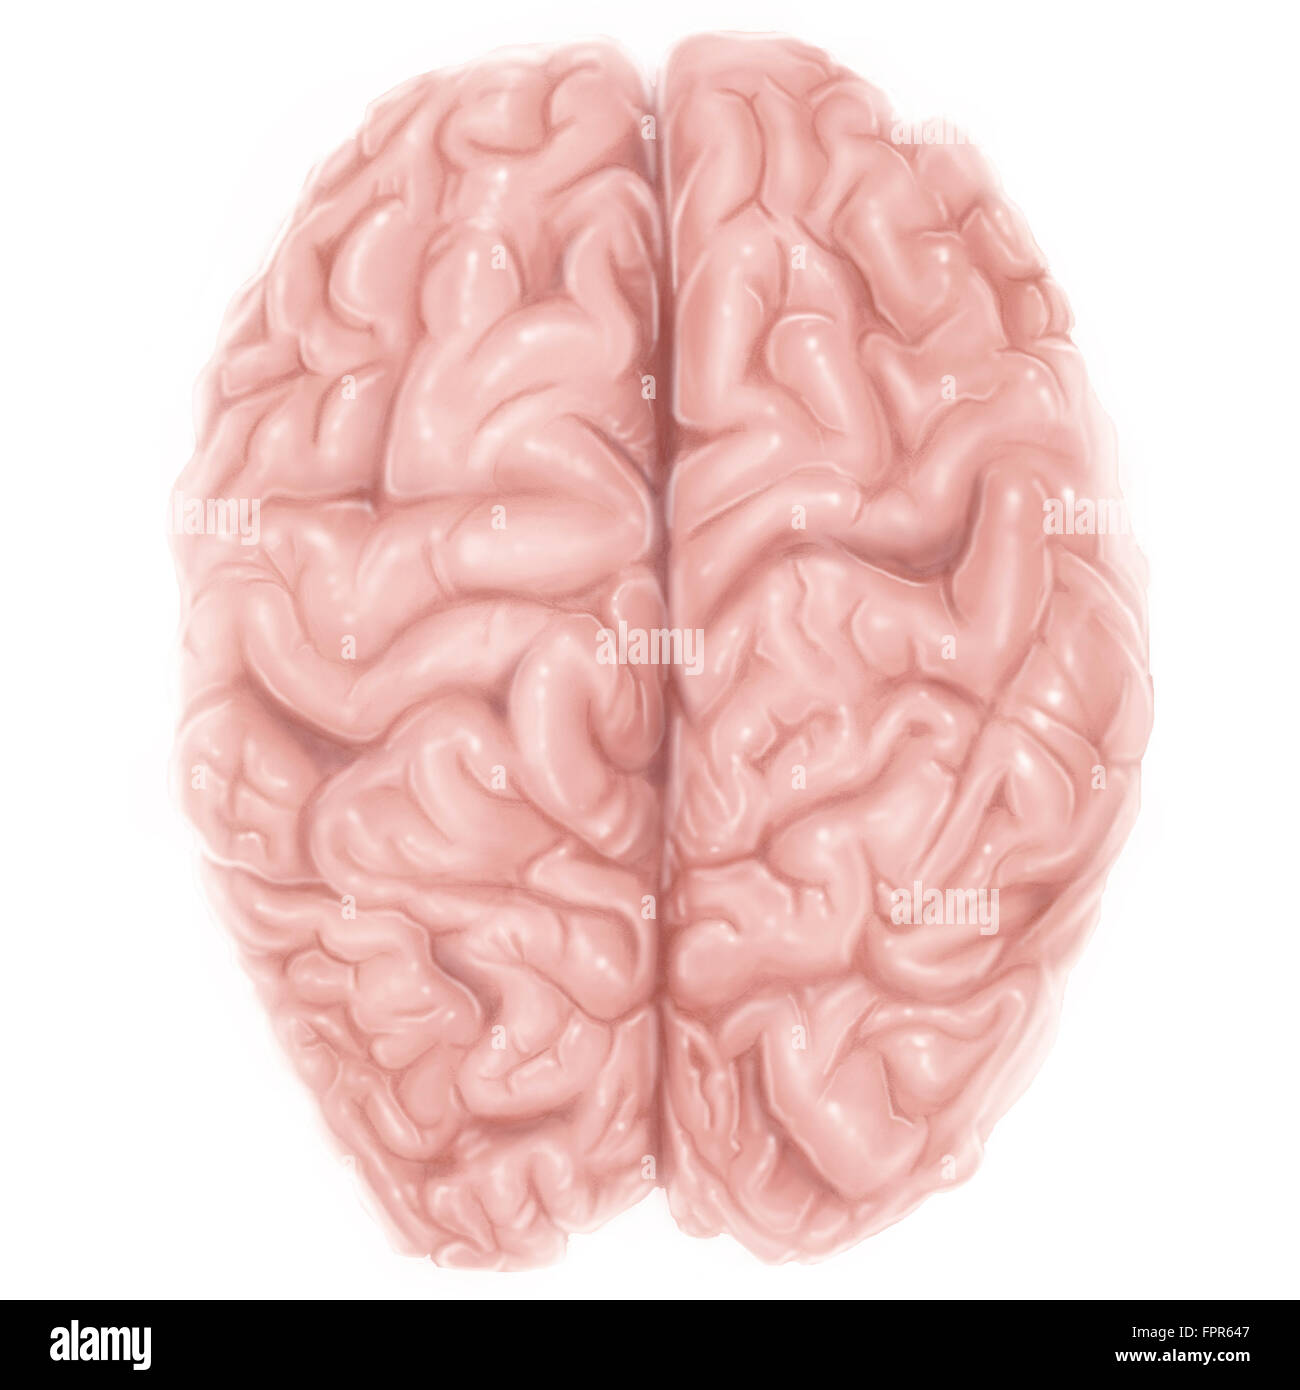 superior view of human brain stock image